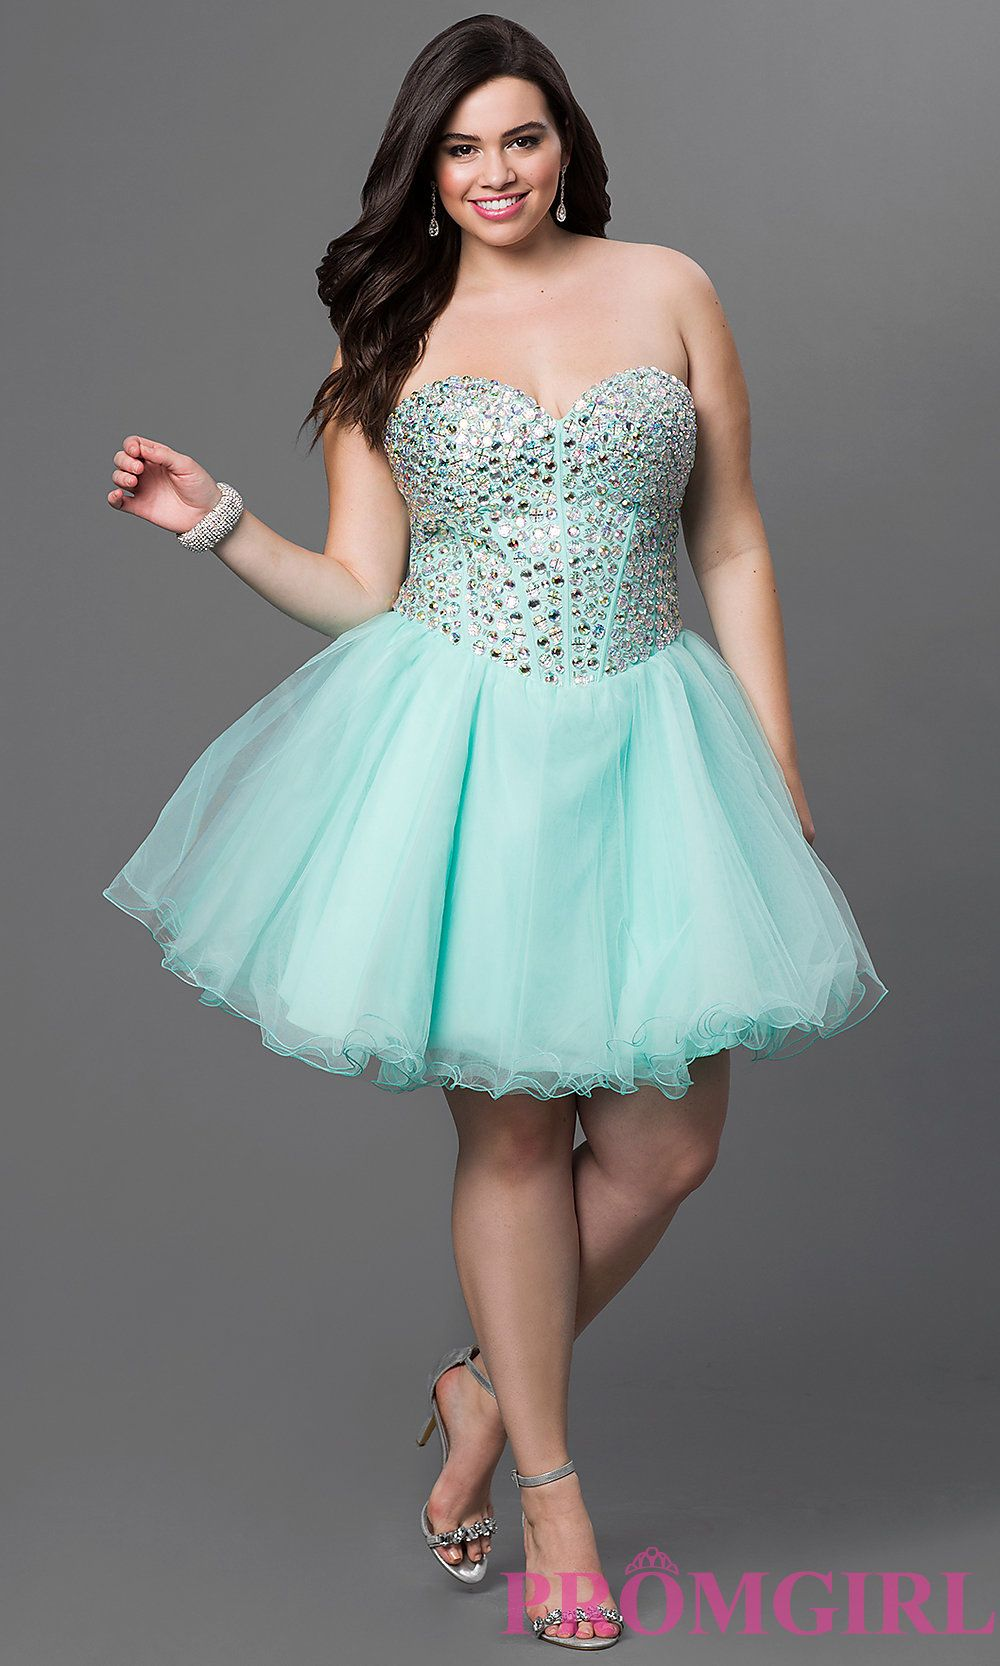 Style nap detail image prom pinterest homecoming